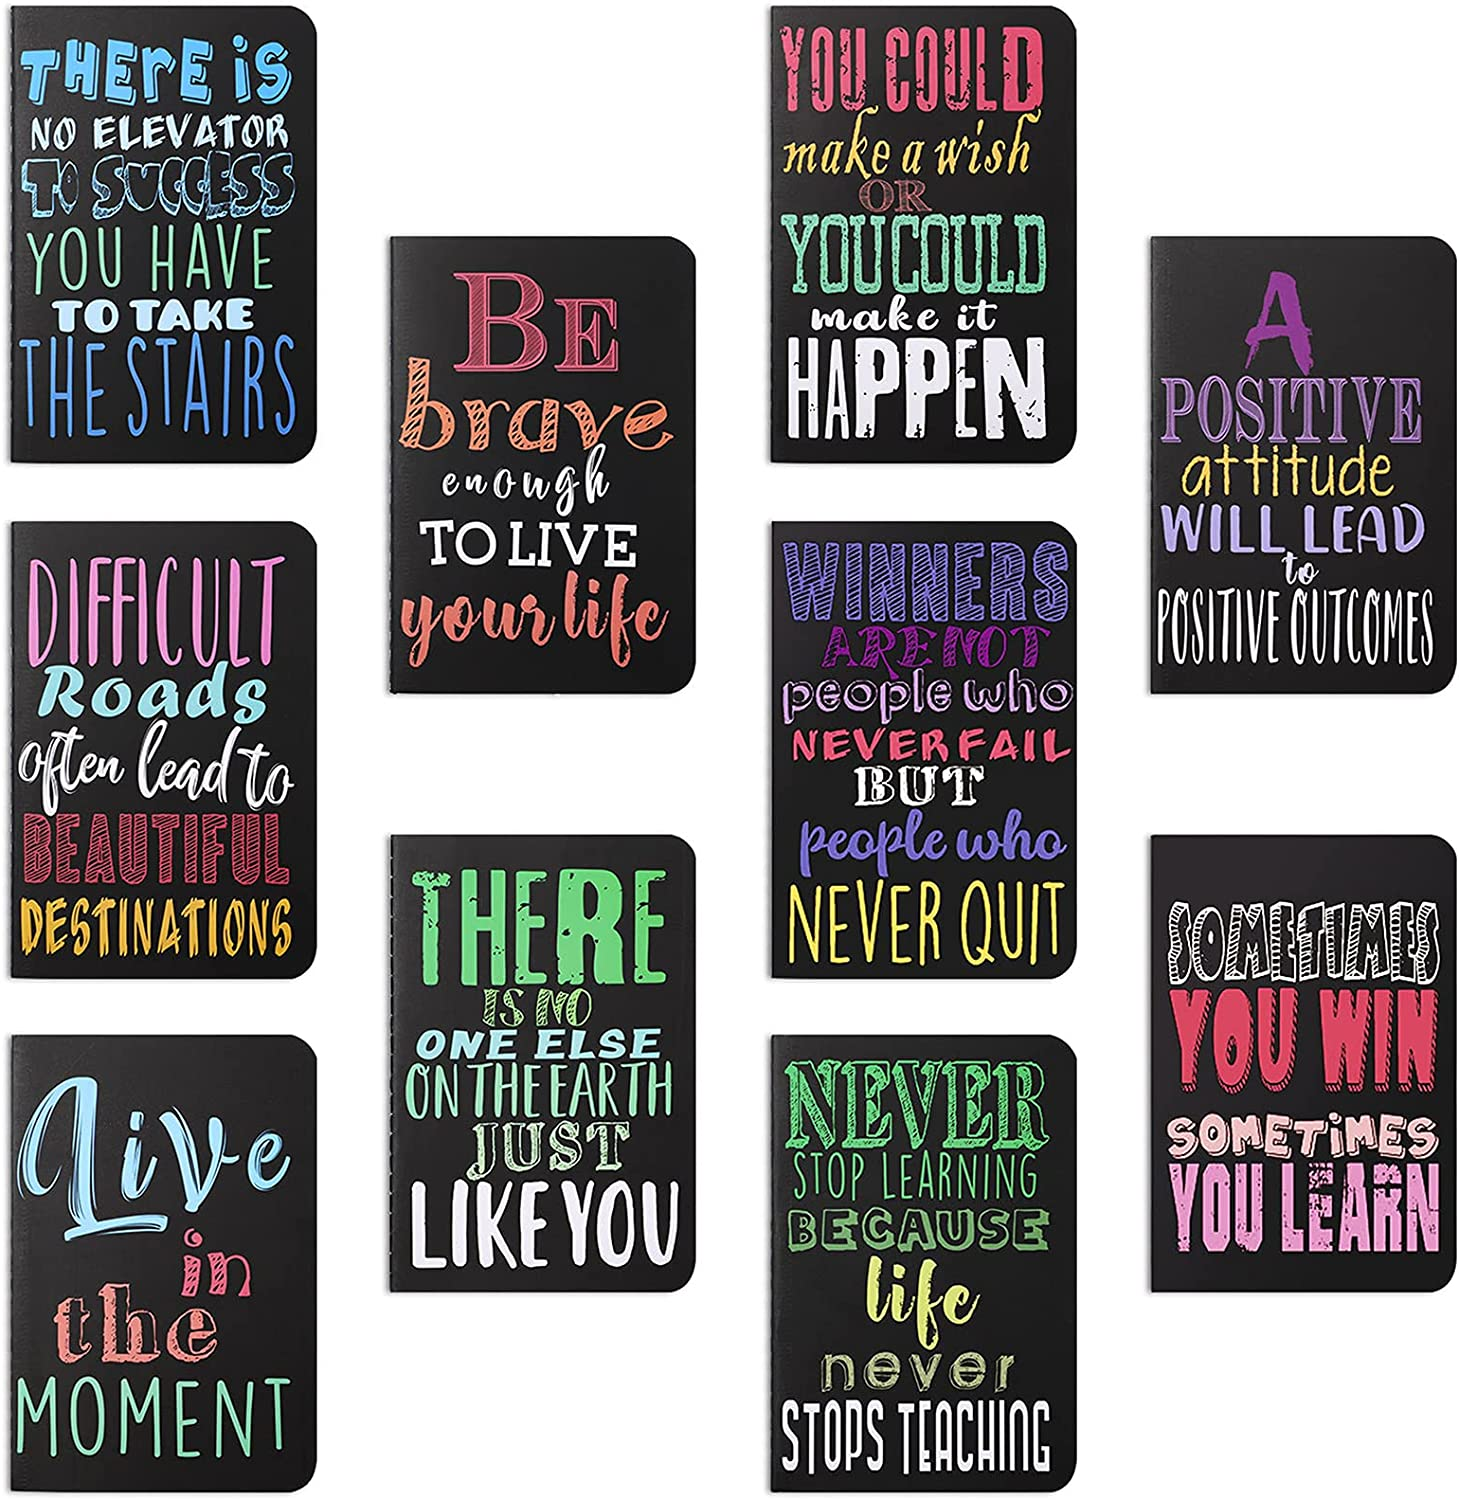 Inspirational Notepads Mini Motivational Journal Notebook Small Pocket Notepads for School Office Home Travel Gift Supplies, 10 Styles (Bright Colors,10 Pieces)